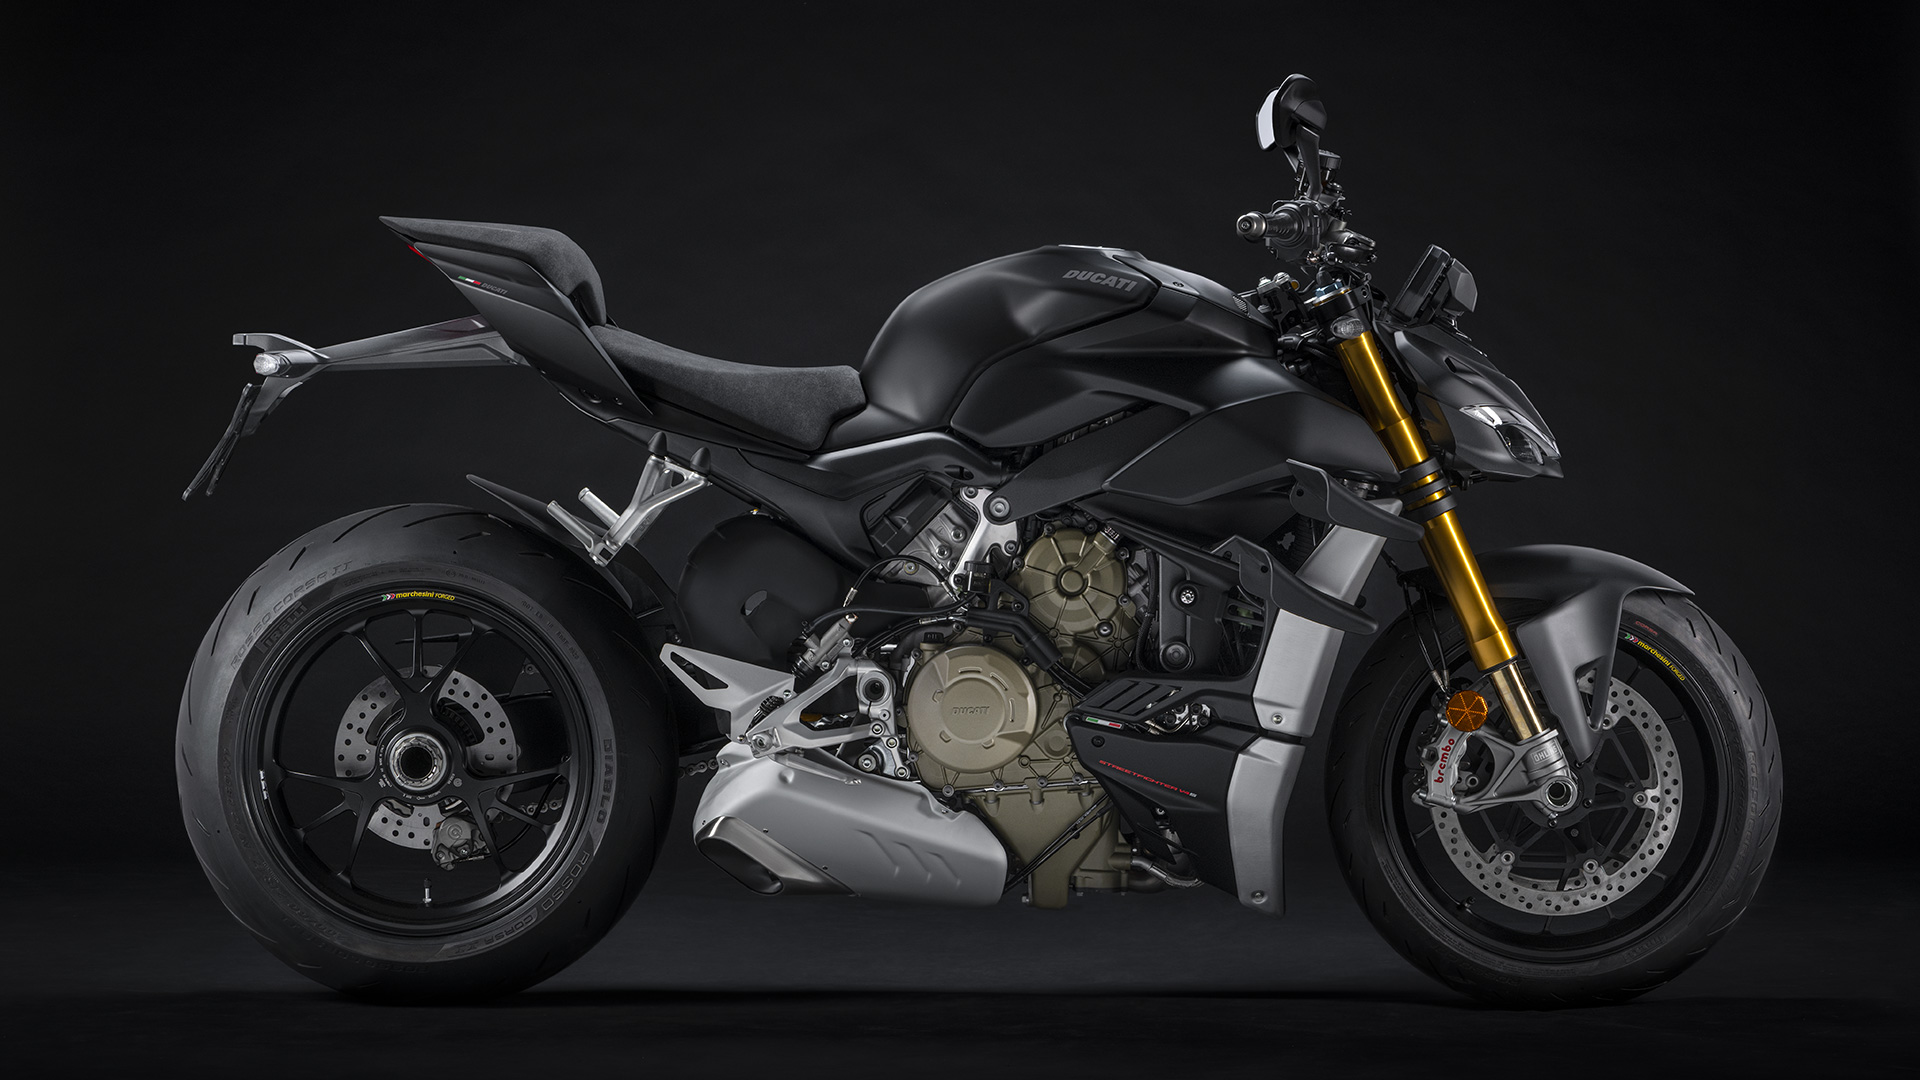 10 Most Brutal Streetfighter Motorcycles For 2021 / The Most Powerful and Holigan Bikes of all time